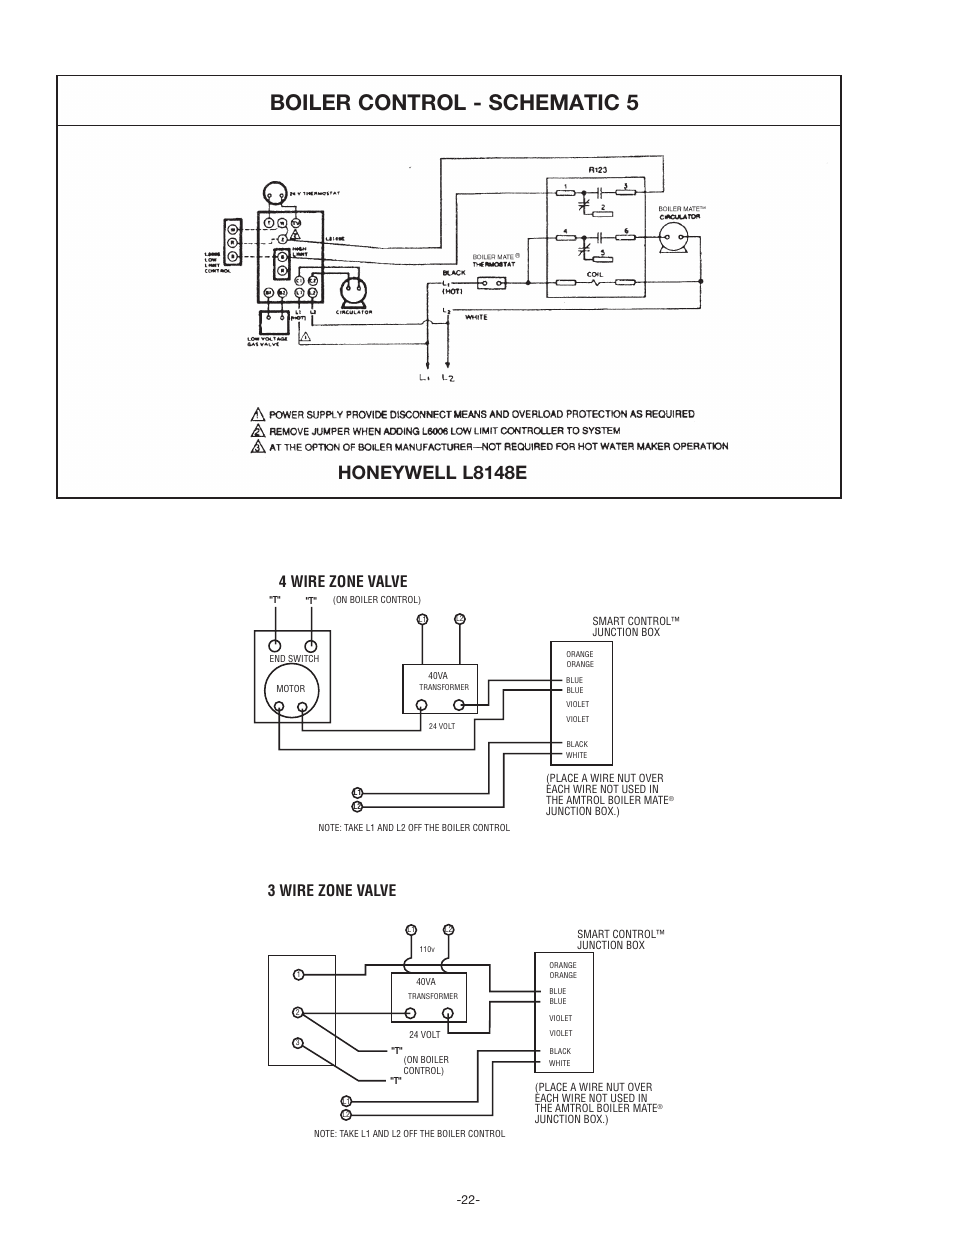 Boiler control - schematic 5, Honeywell l8148e, 4 wire zone valve | Amtrol  BoilerMate Top Down User Manual | Page 22 / 32